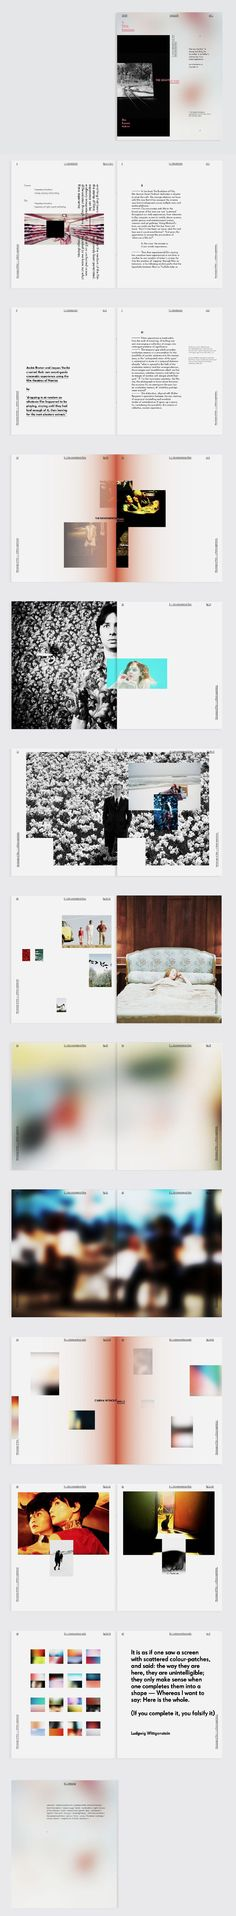 Zheng Joo | Editorial Design                                                                                                                                                                                 More